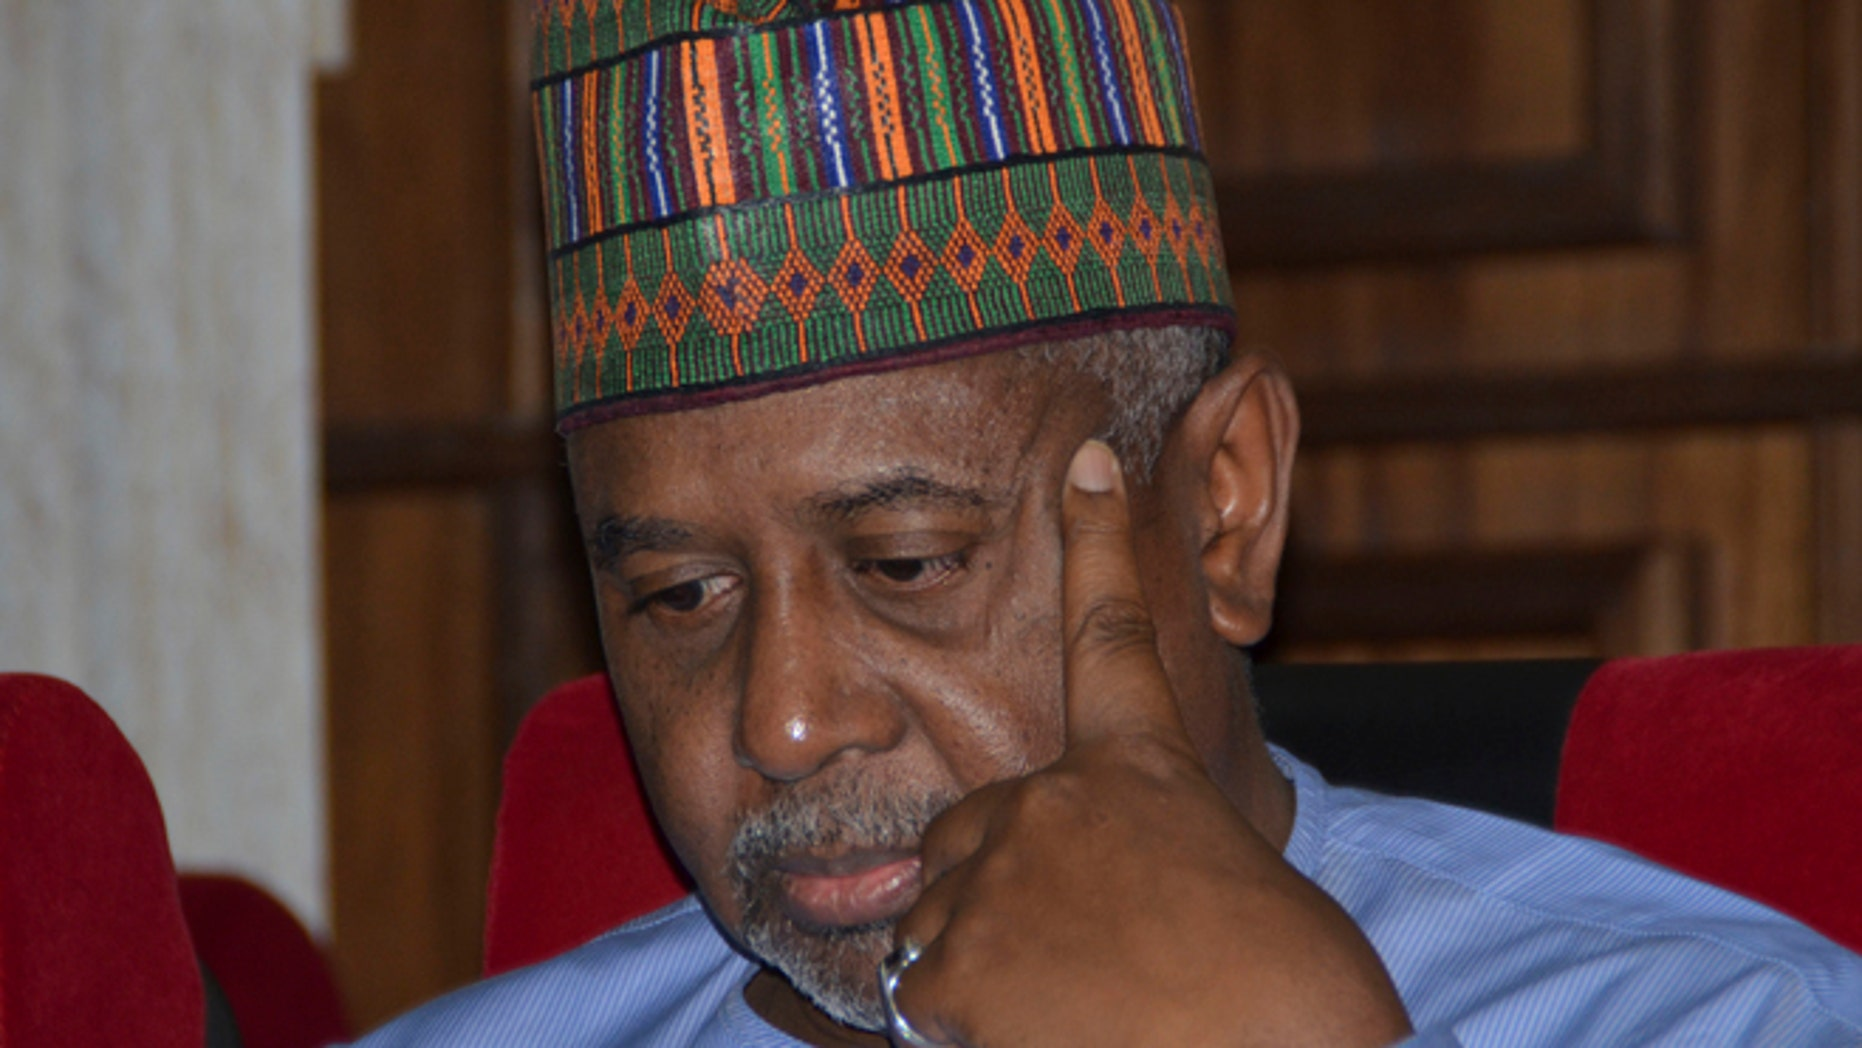 Sept. 1, 2015: Nigeria's former national security adviser Sambo Dasuki attends a hearing to face charges of possessing weapons illegally, at the Federal High Court in Abuja, Nigeria.